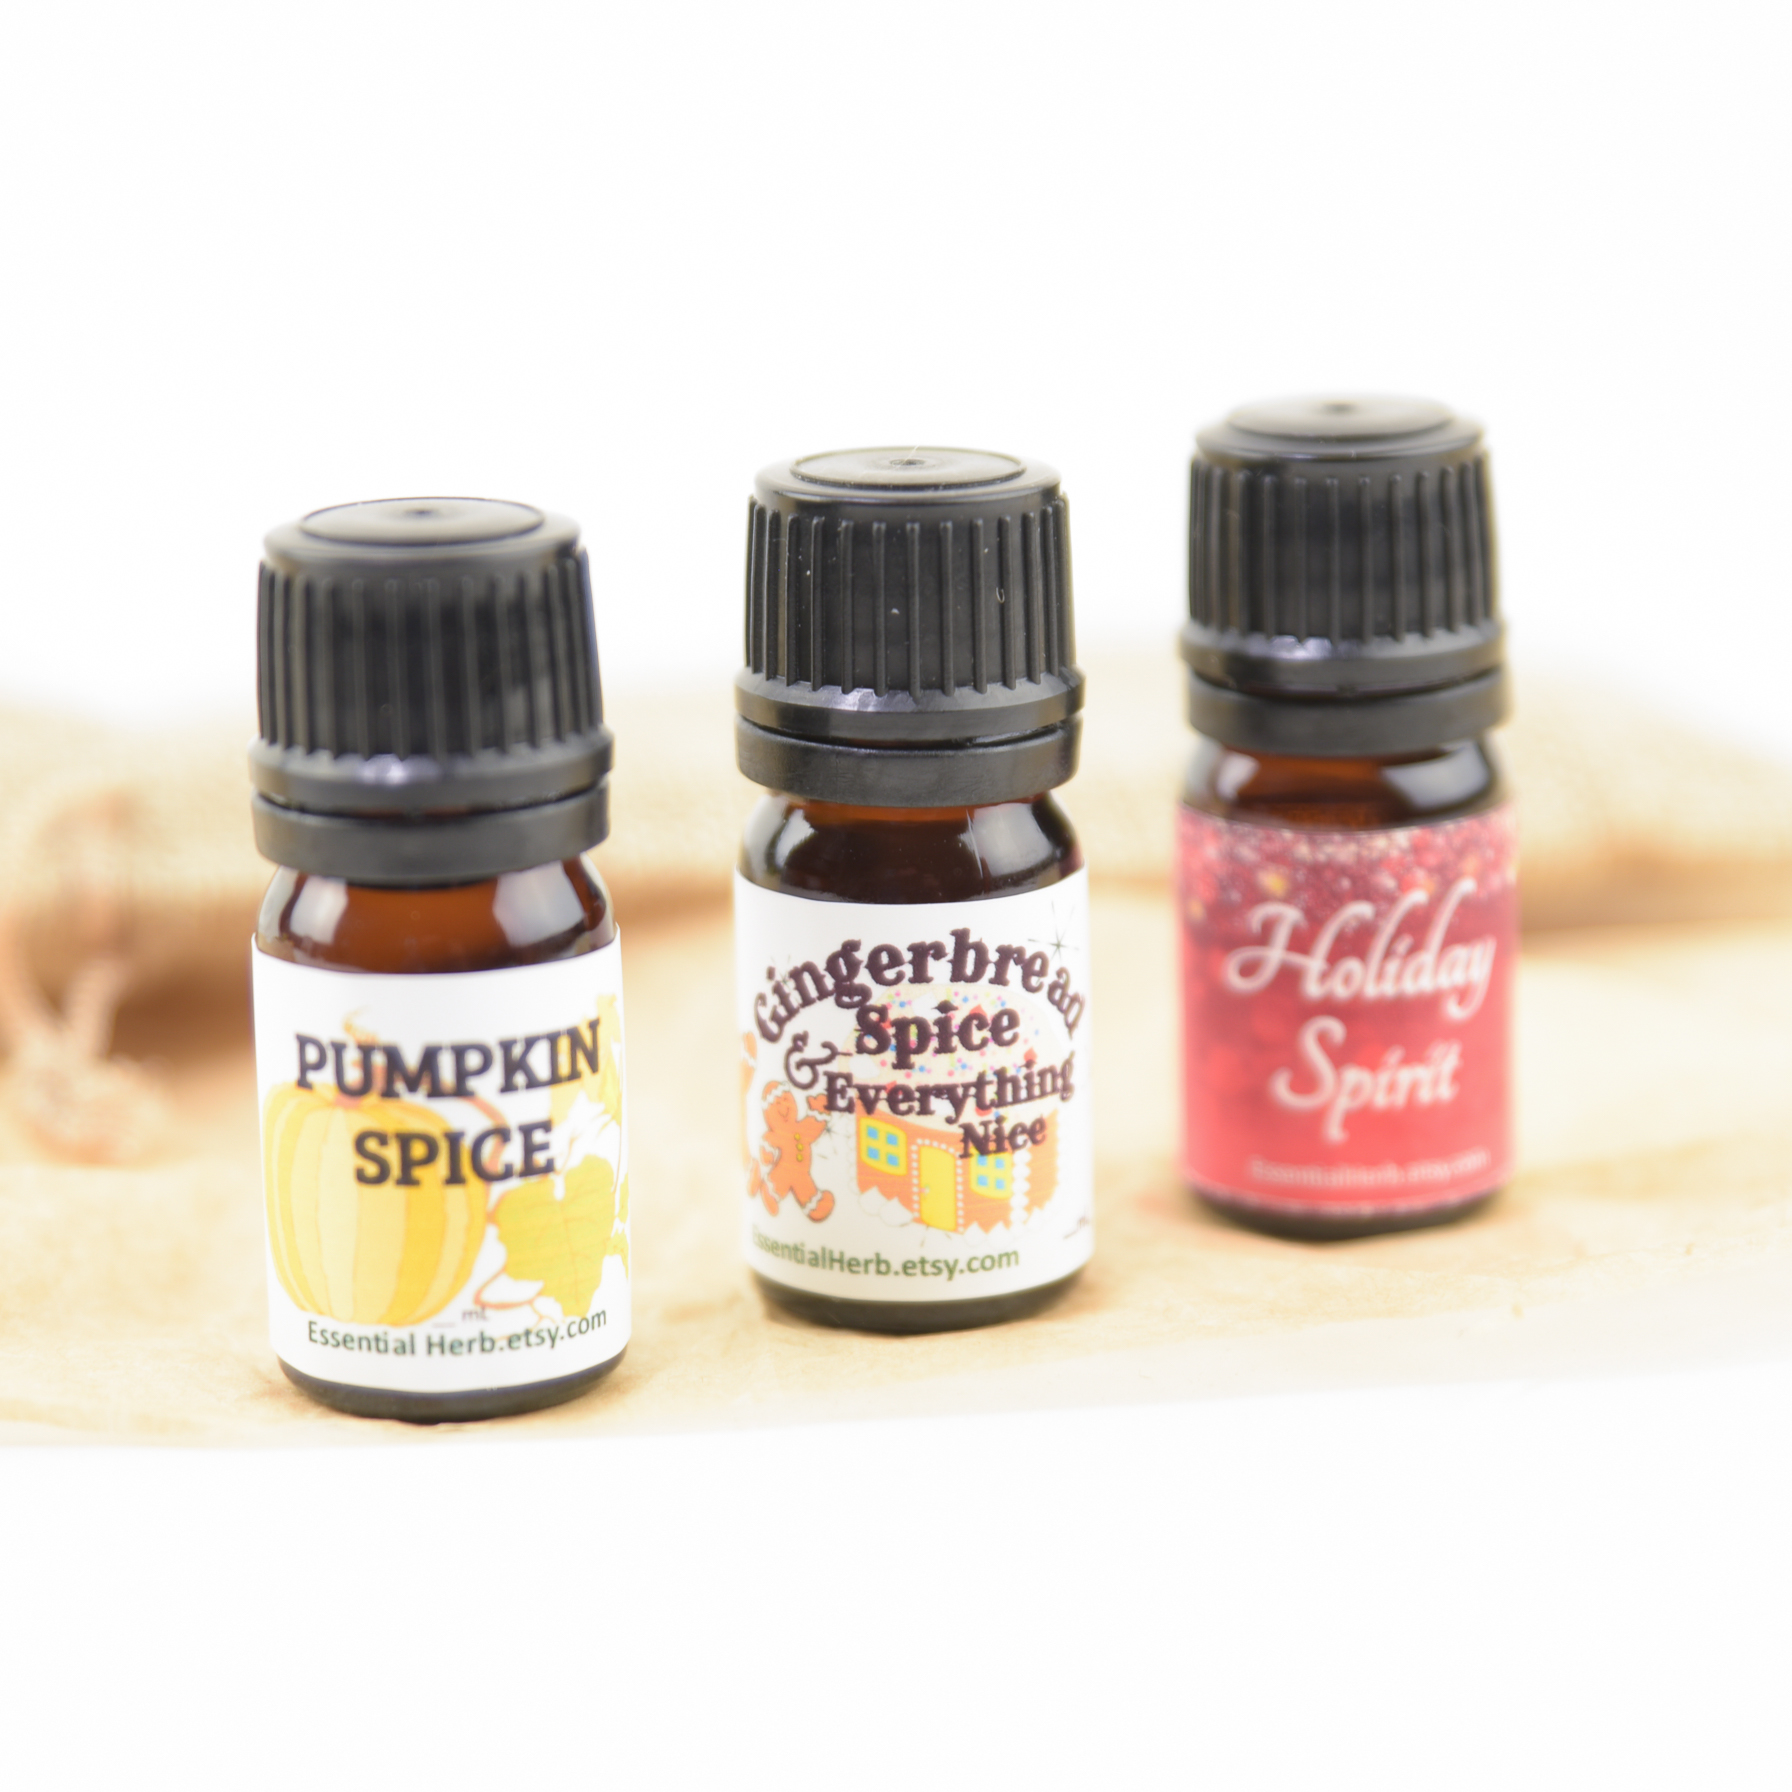 Holiday Spirit Essential Oils Variety Pack